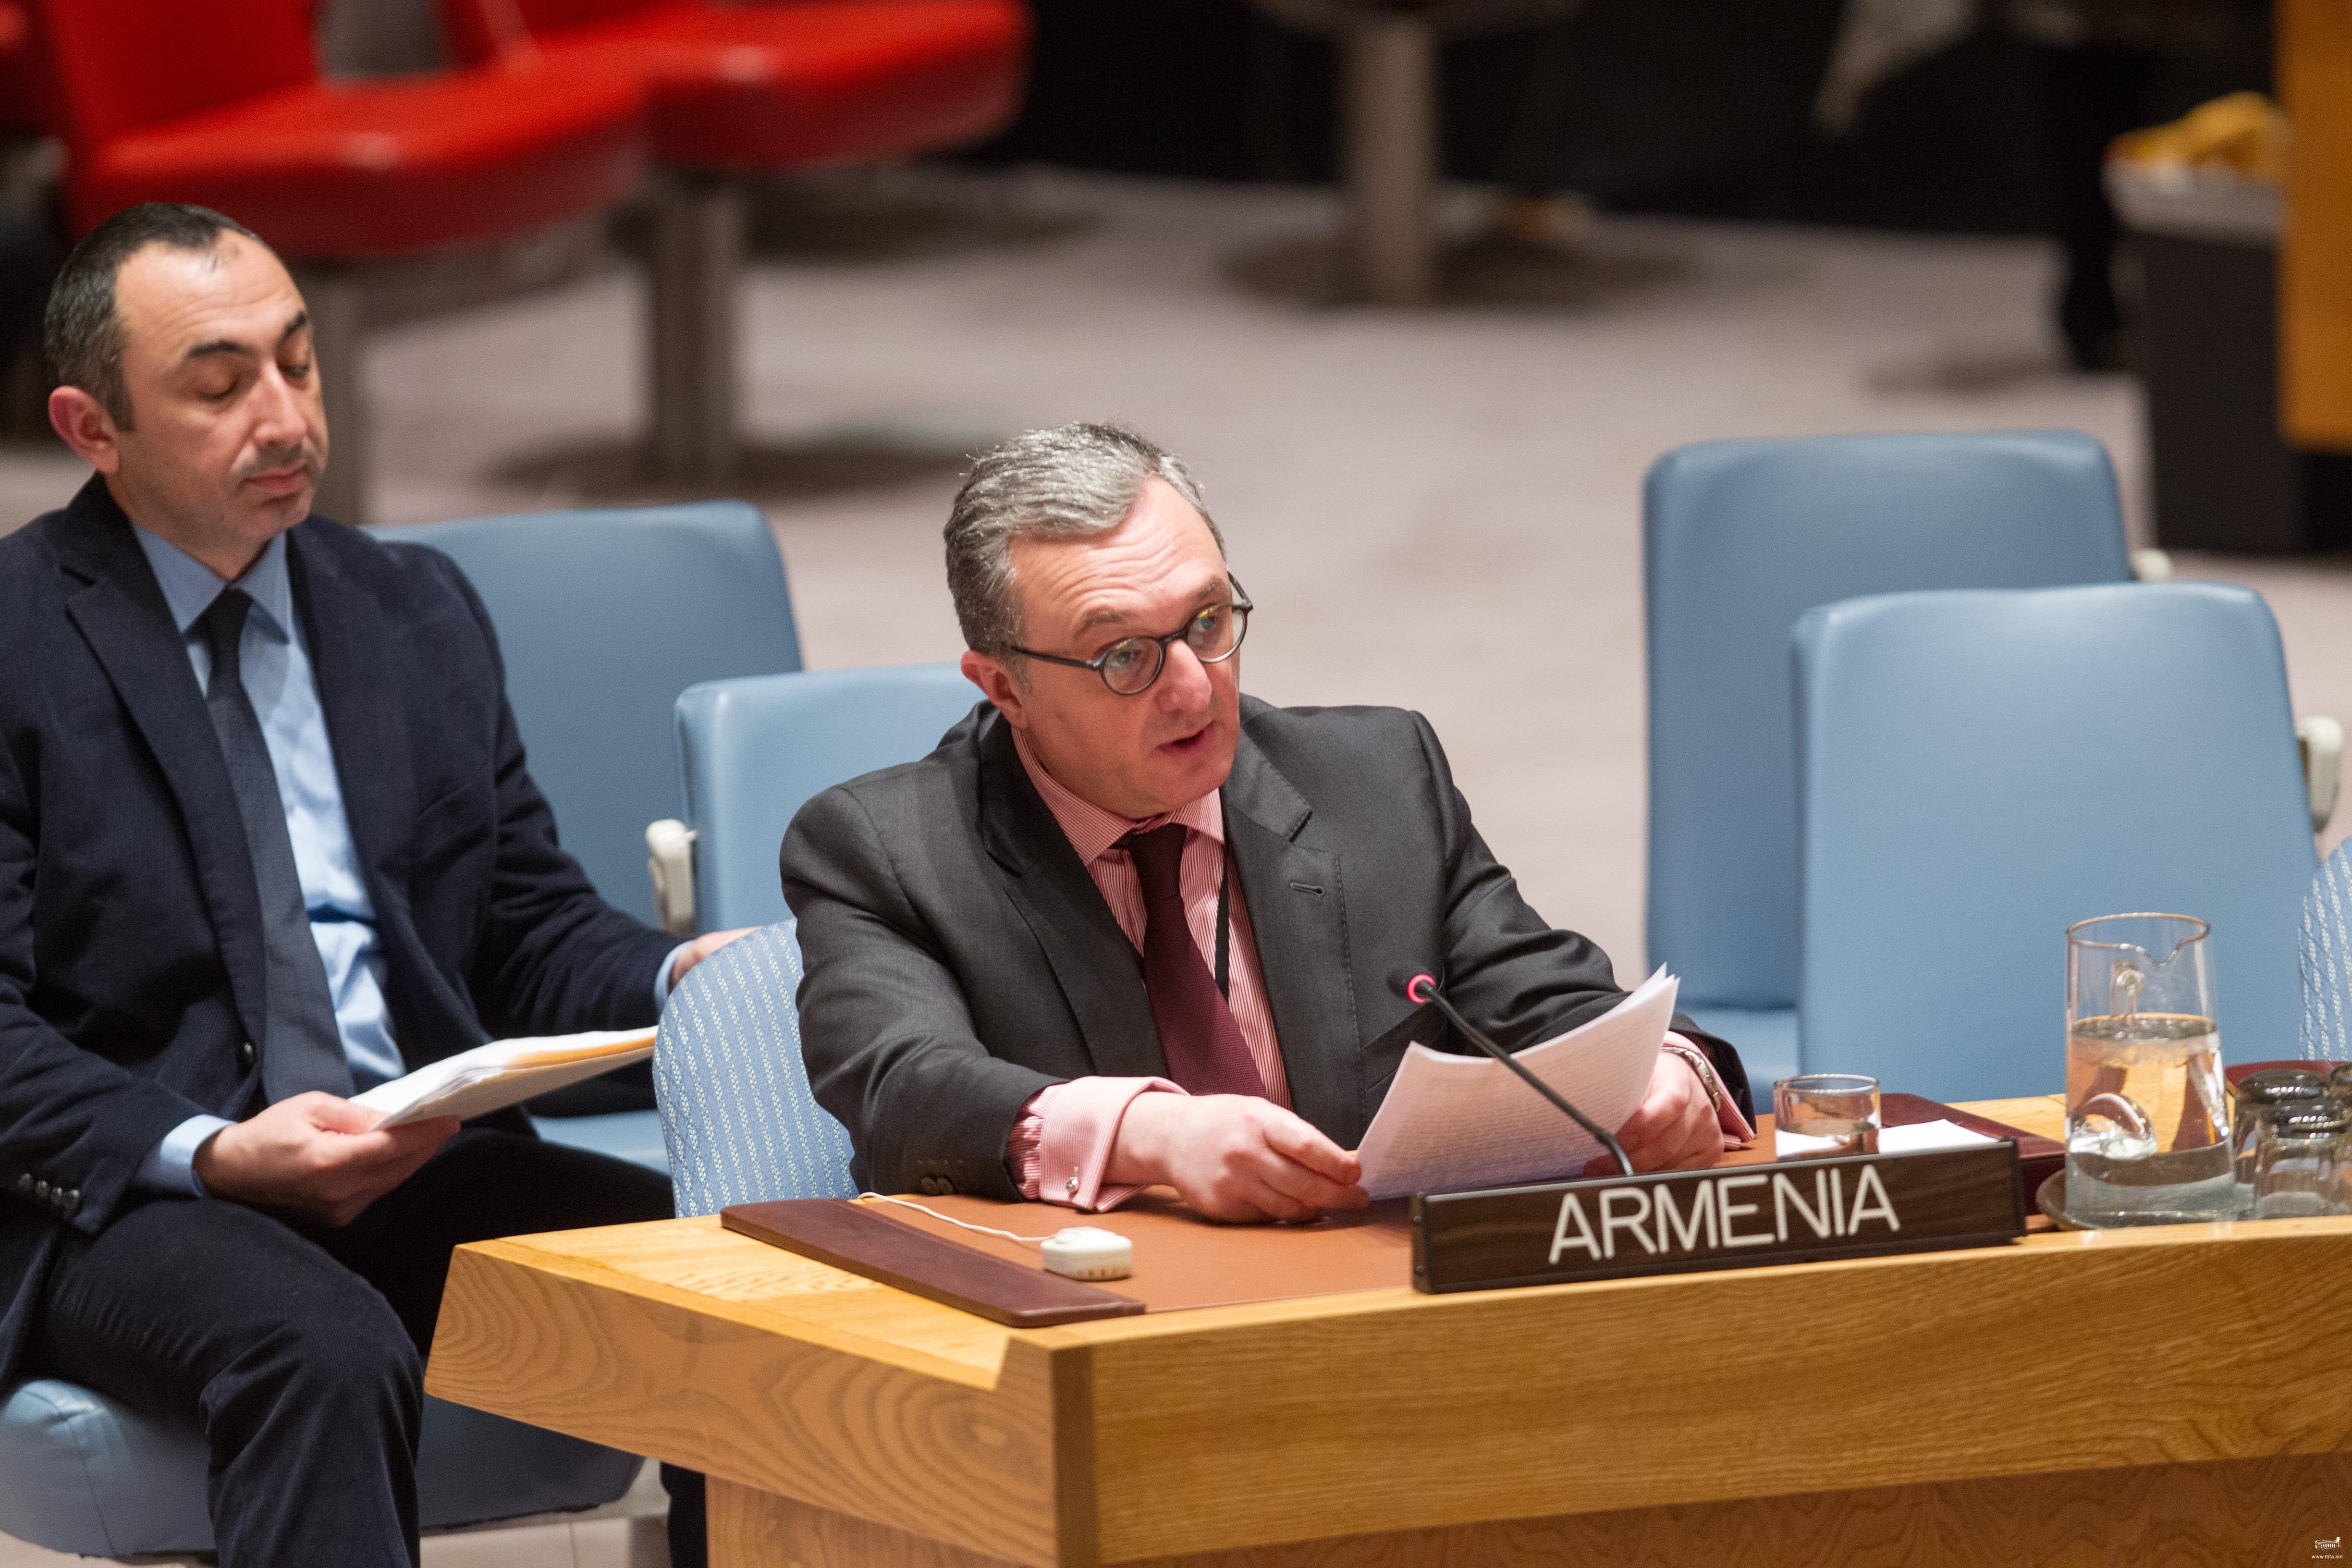 """Ambassador Mnatsakanyan participated in the UNSC Open Debate on """"Protection of Civilians in Armed Conflict"""""""